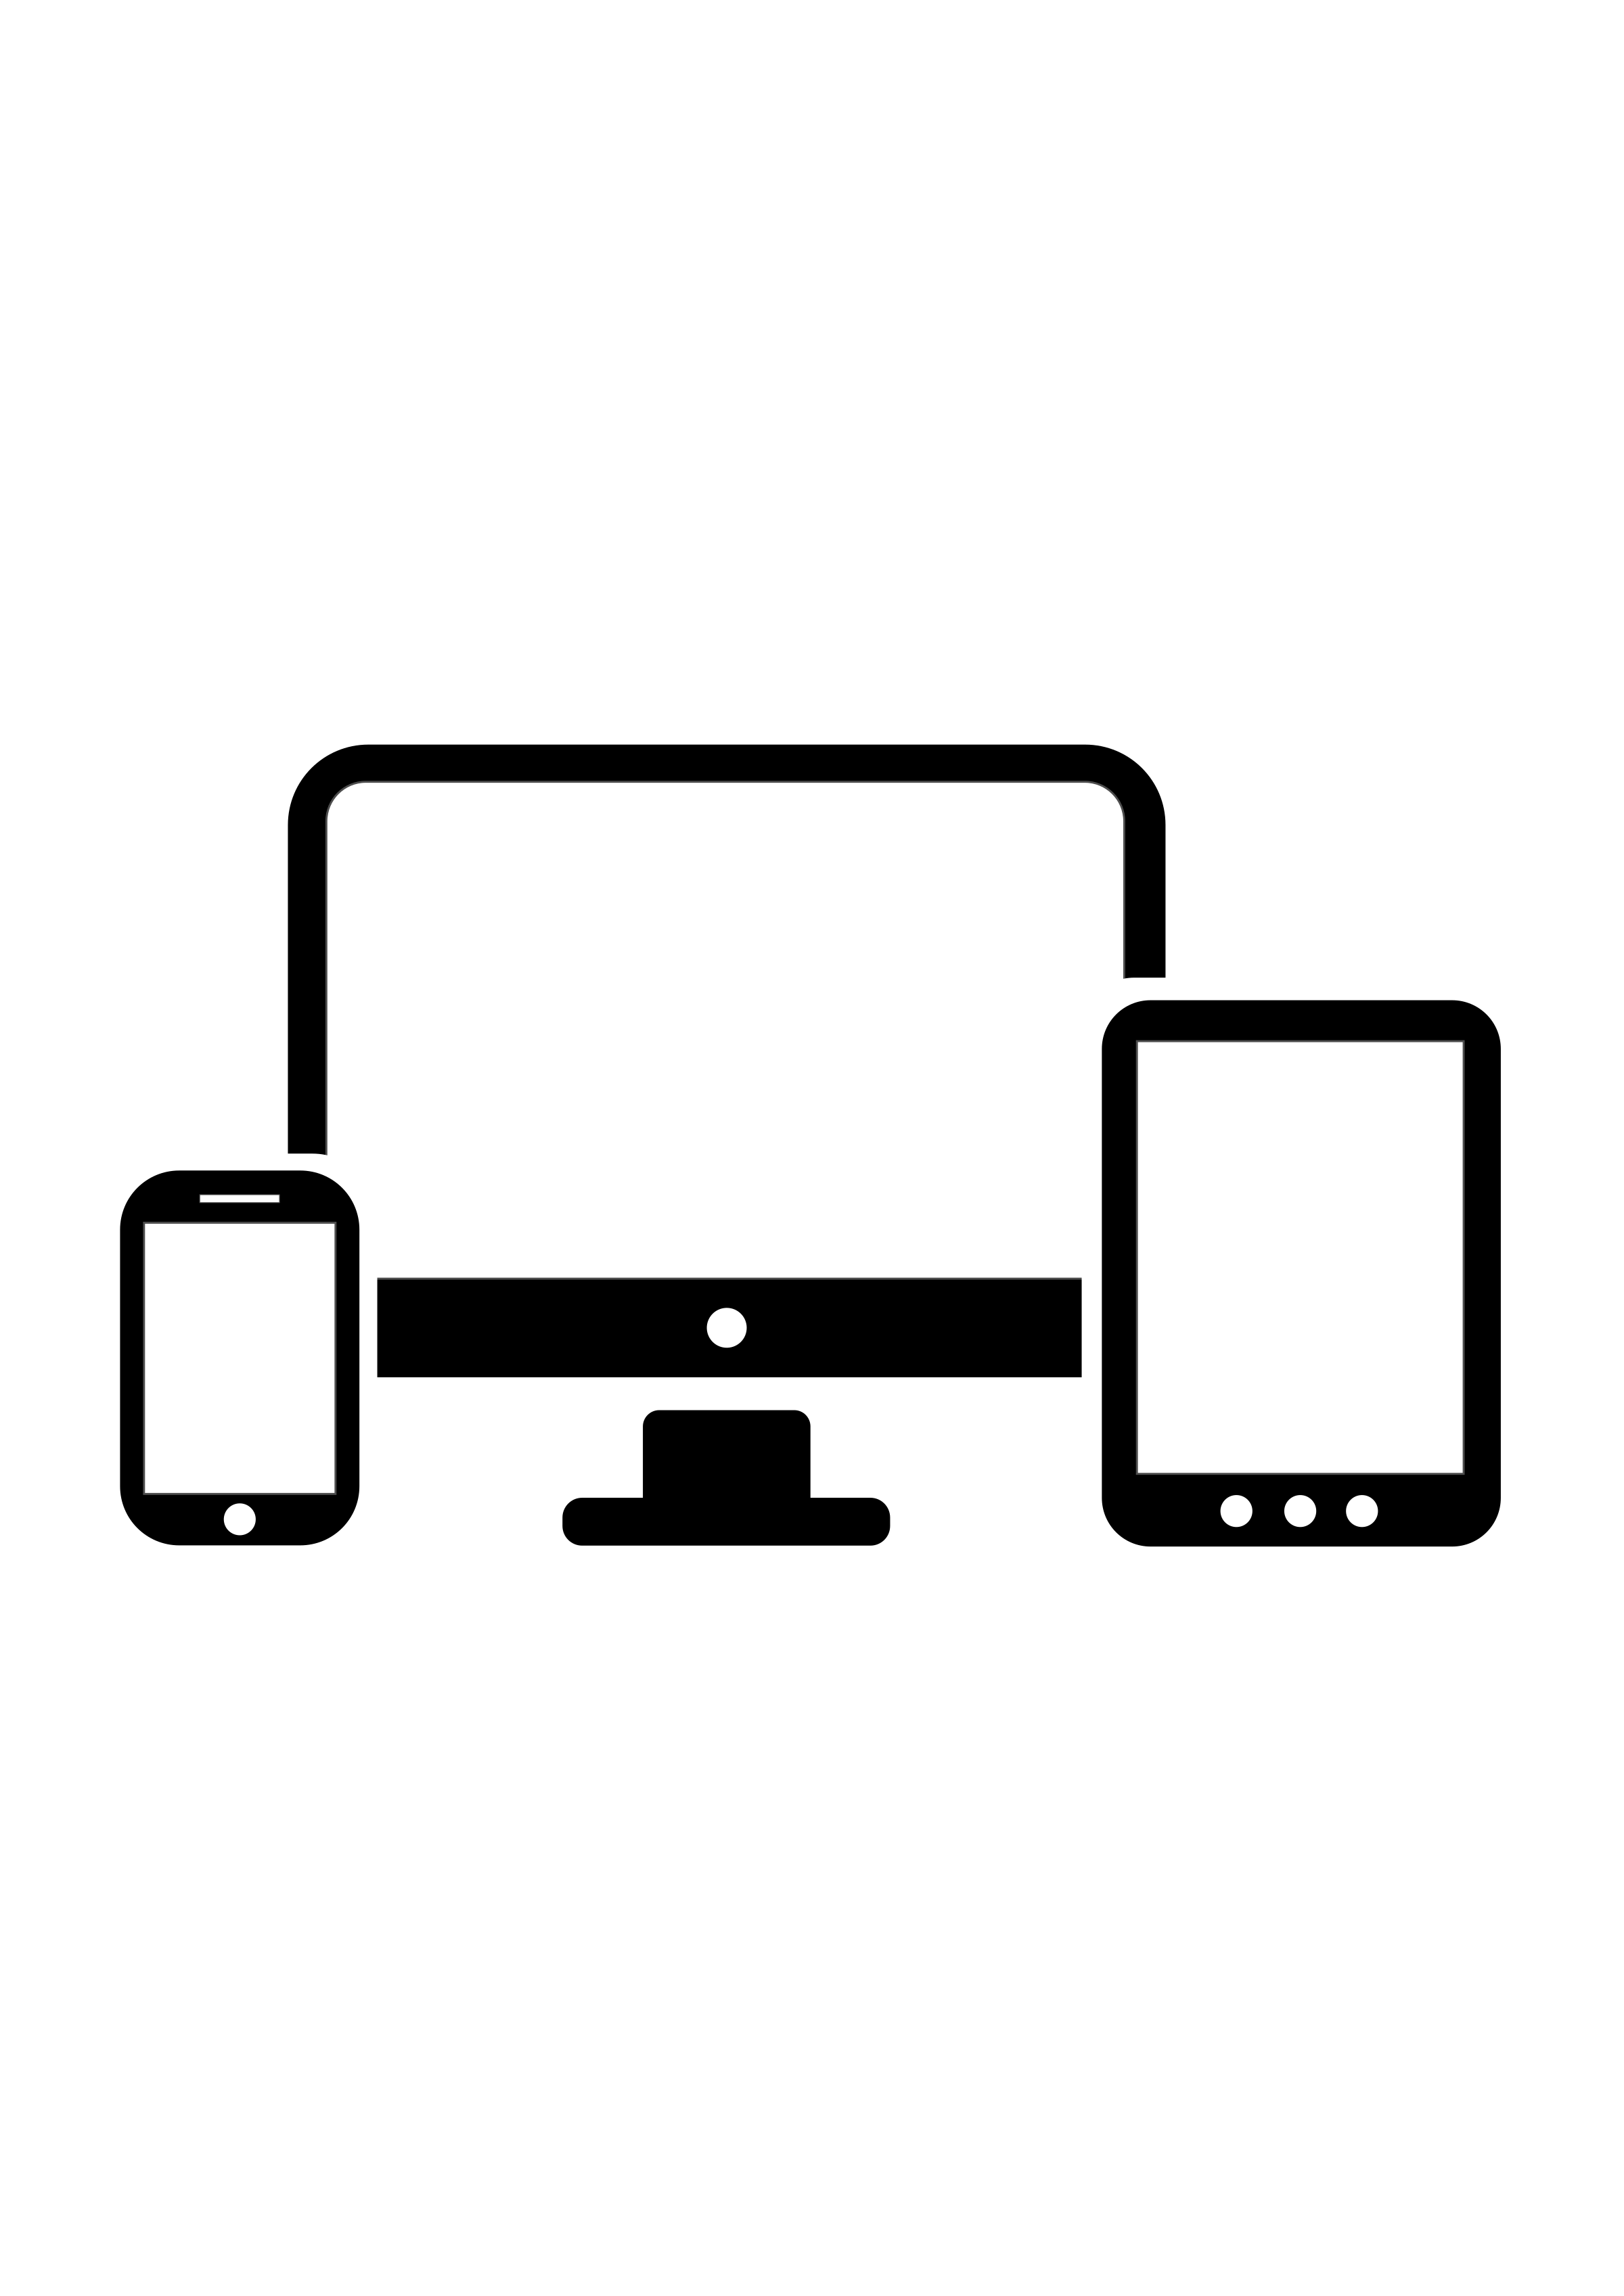 Clipart - Computer Smartphone and Tablet